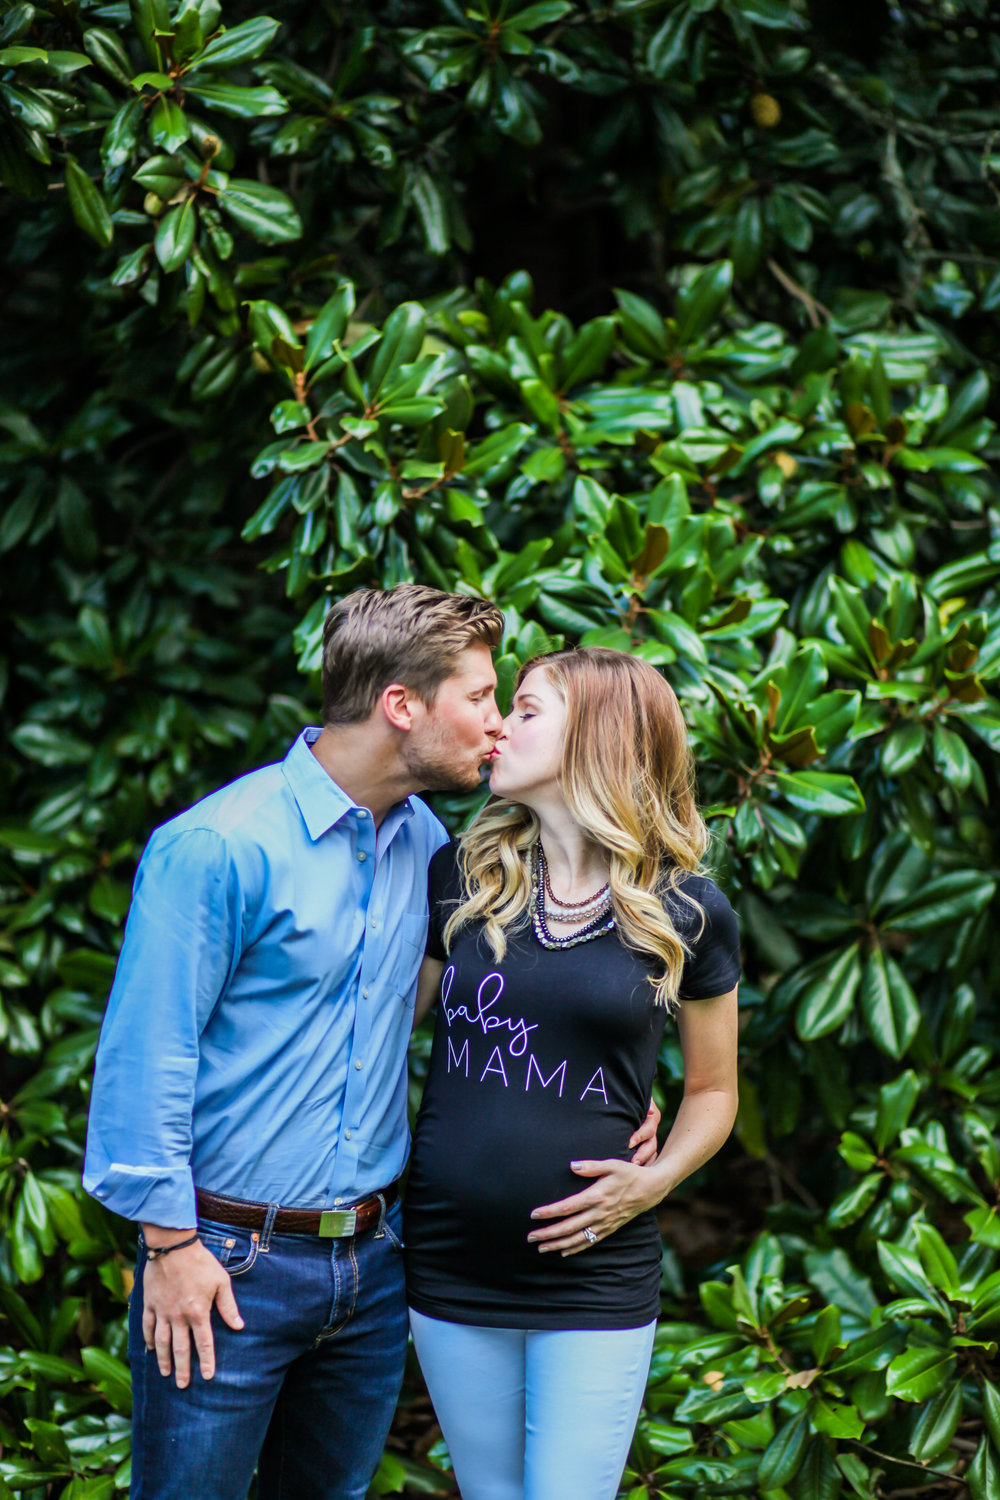 sandy springs atlanta pregnancy annoucnement photography 7.jpg